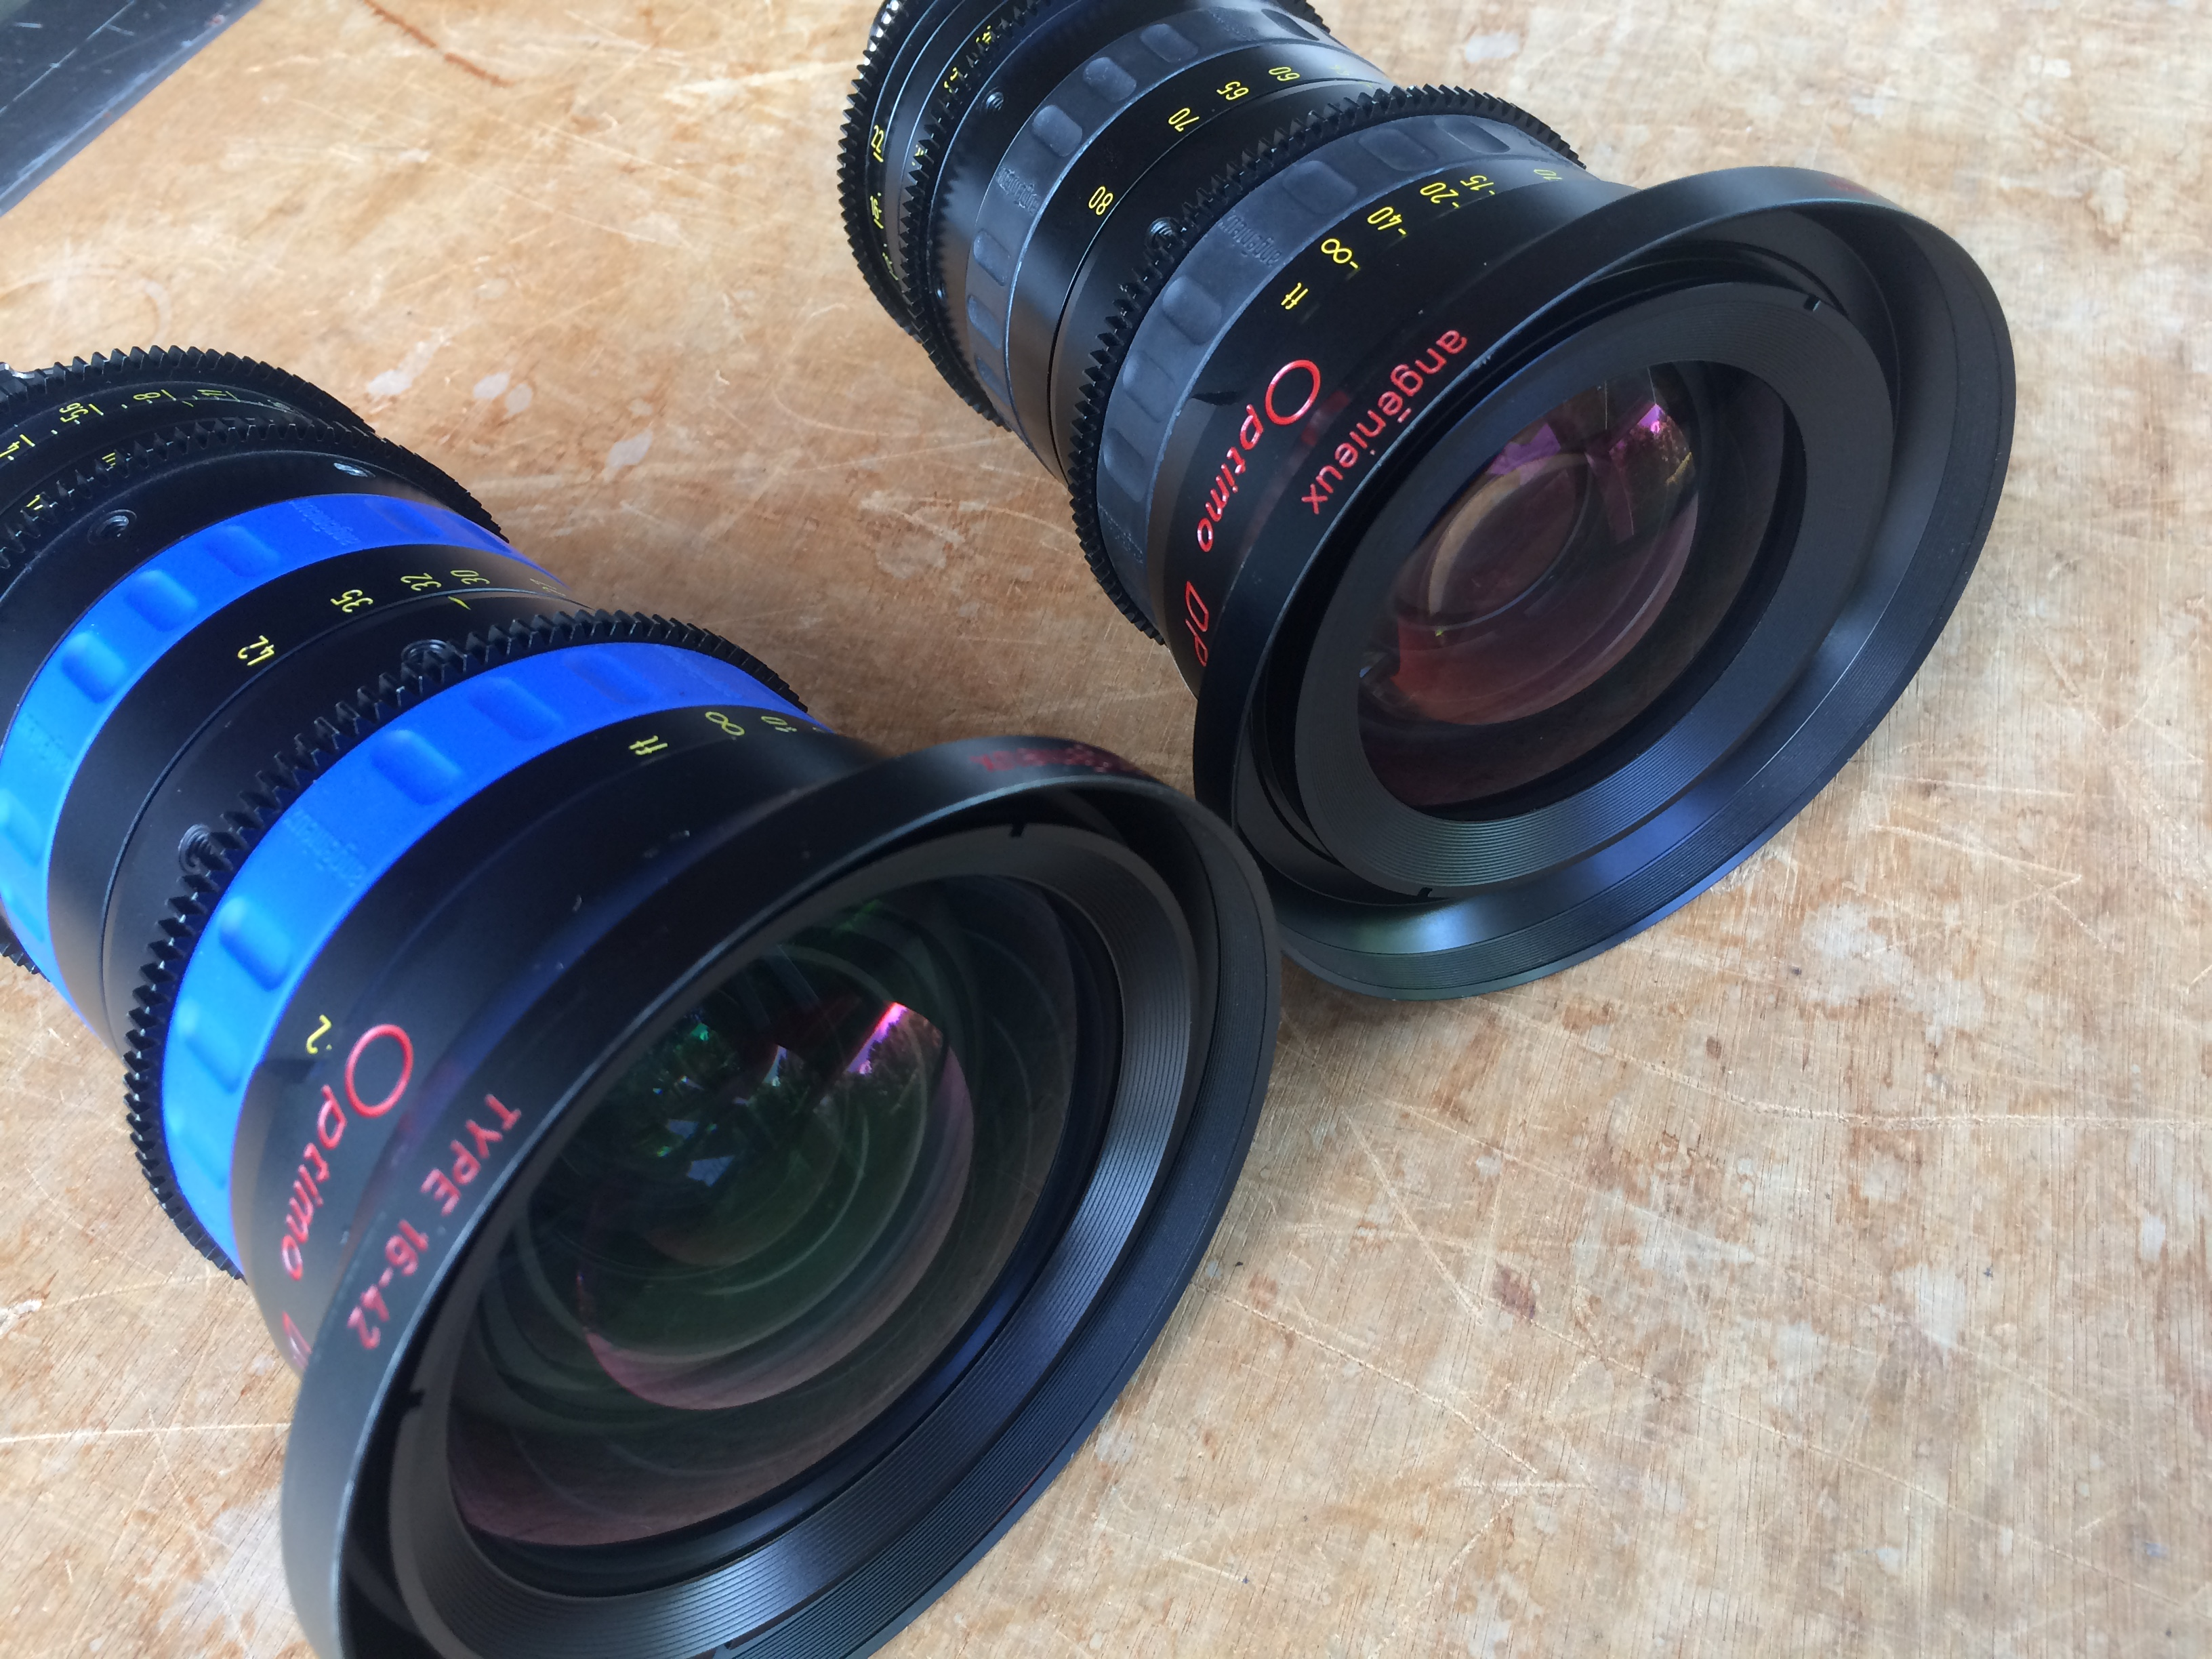 Angenieux Optimo DP 16-42mm Optimo DP 30-80mm Optimo DP 30-80mm  - Image #1